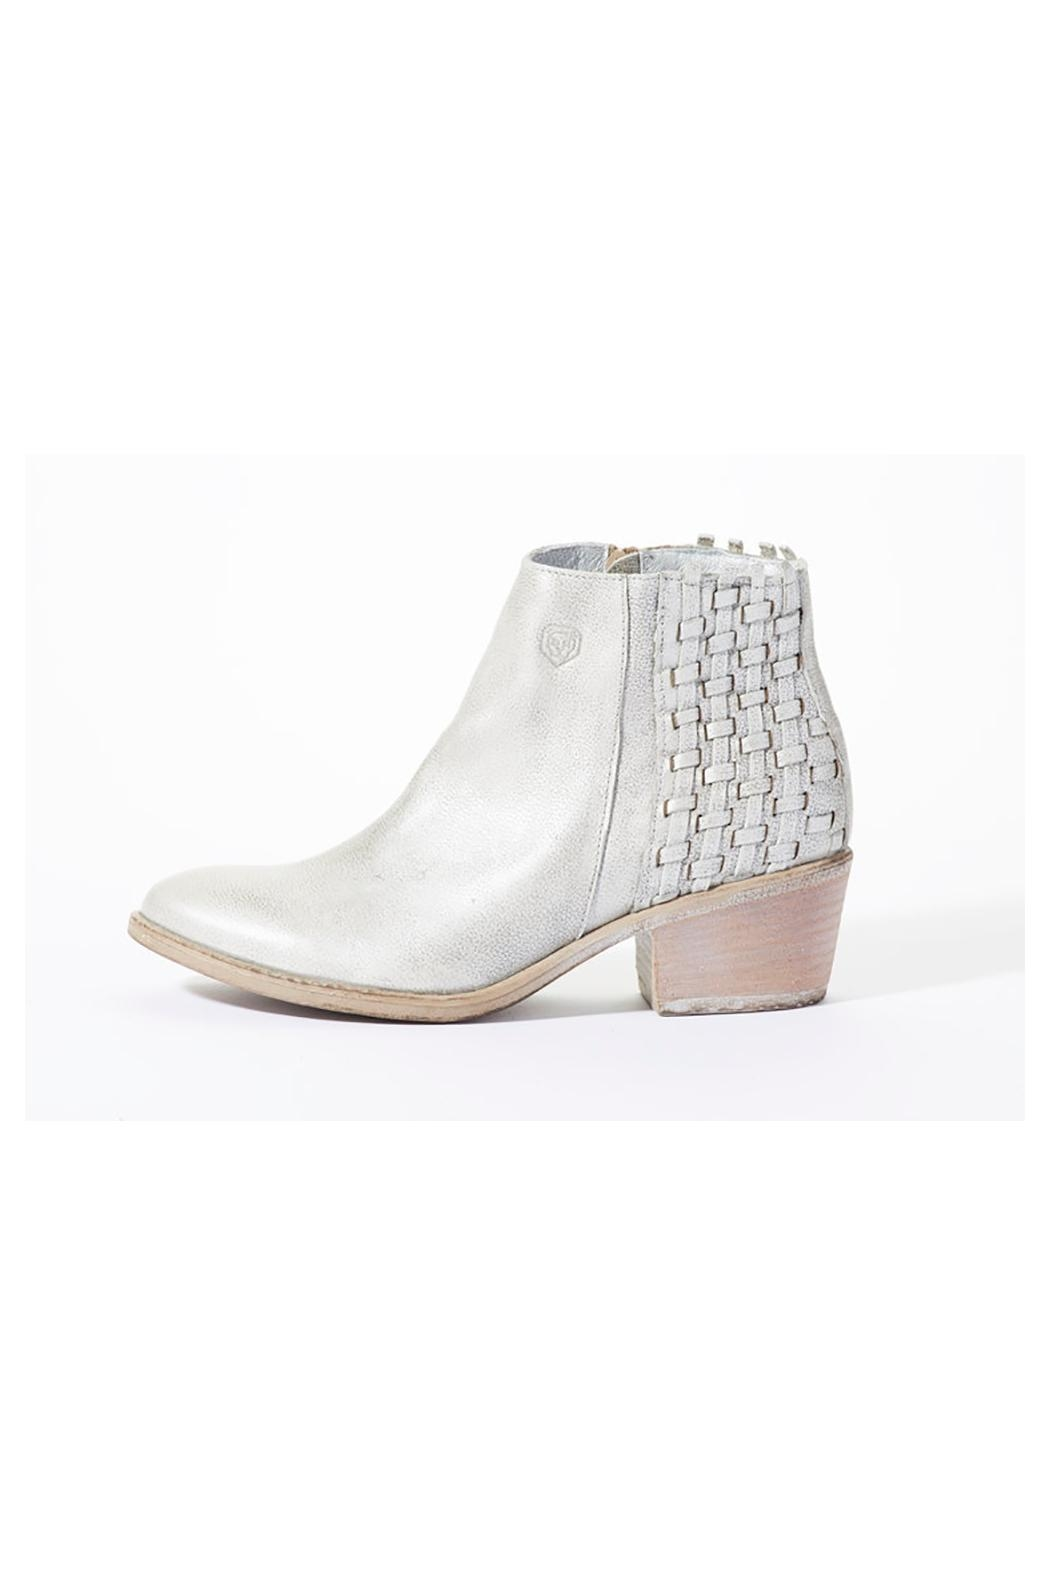 Rebel With Cause Silver Braided Bootie - Front Full Image